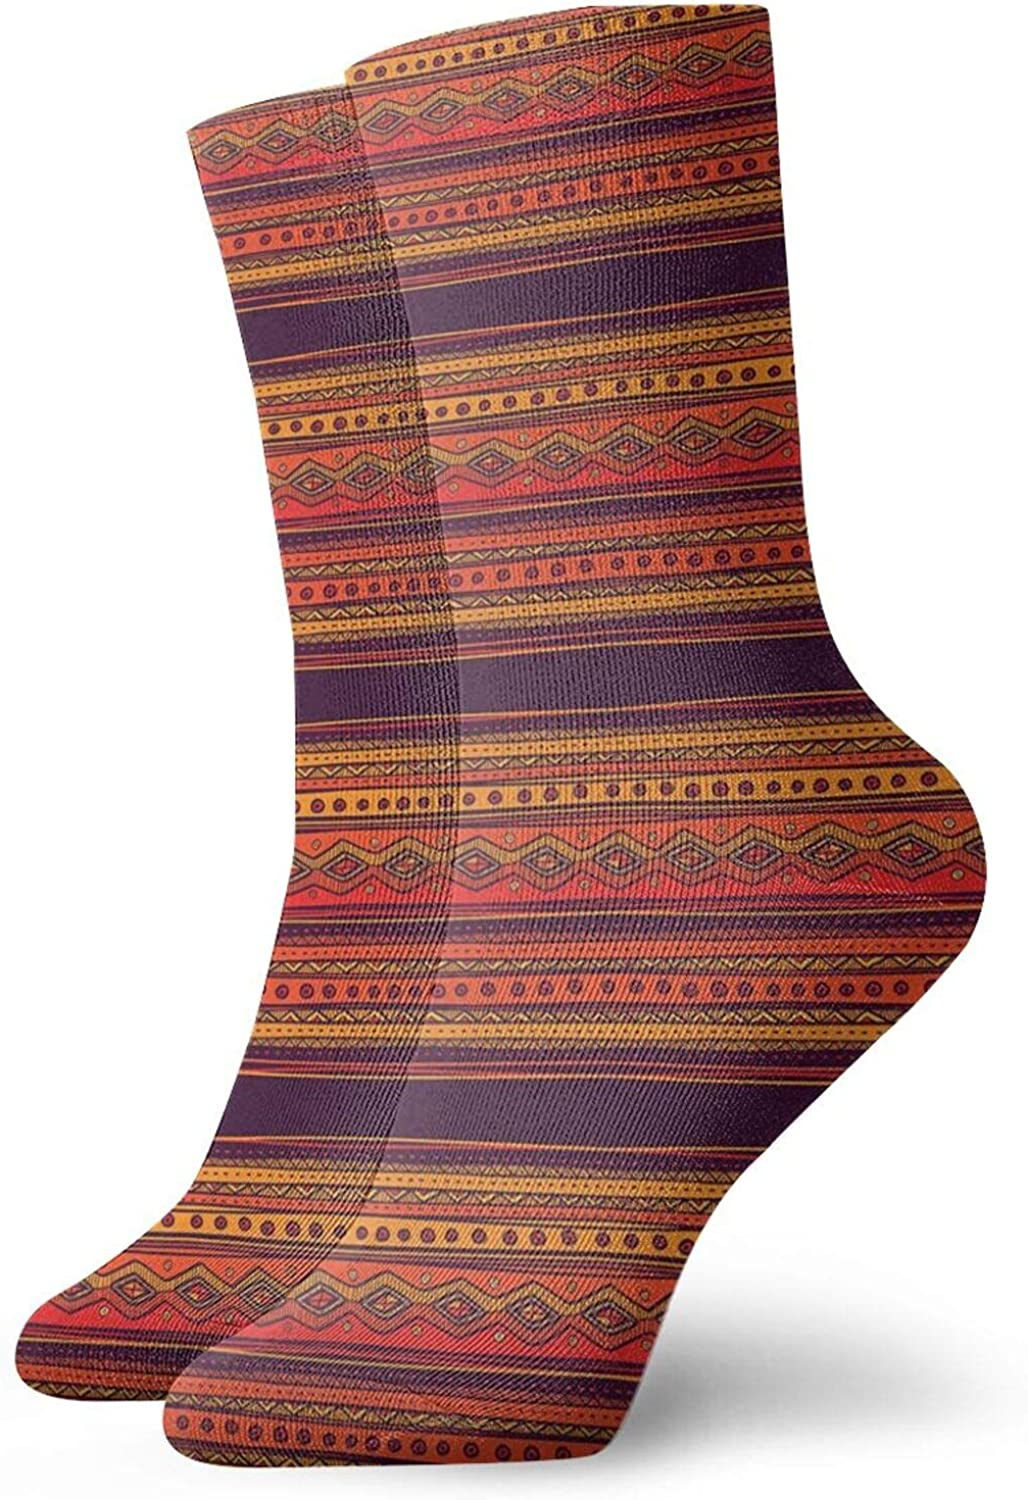 Compression High Socks-Abstract Hand Drawn Ethno Pattern Artistic Tribal Ancient Borders Doodle Style Best for Running,Athletic,Hiking,Travel,Flight